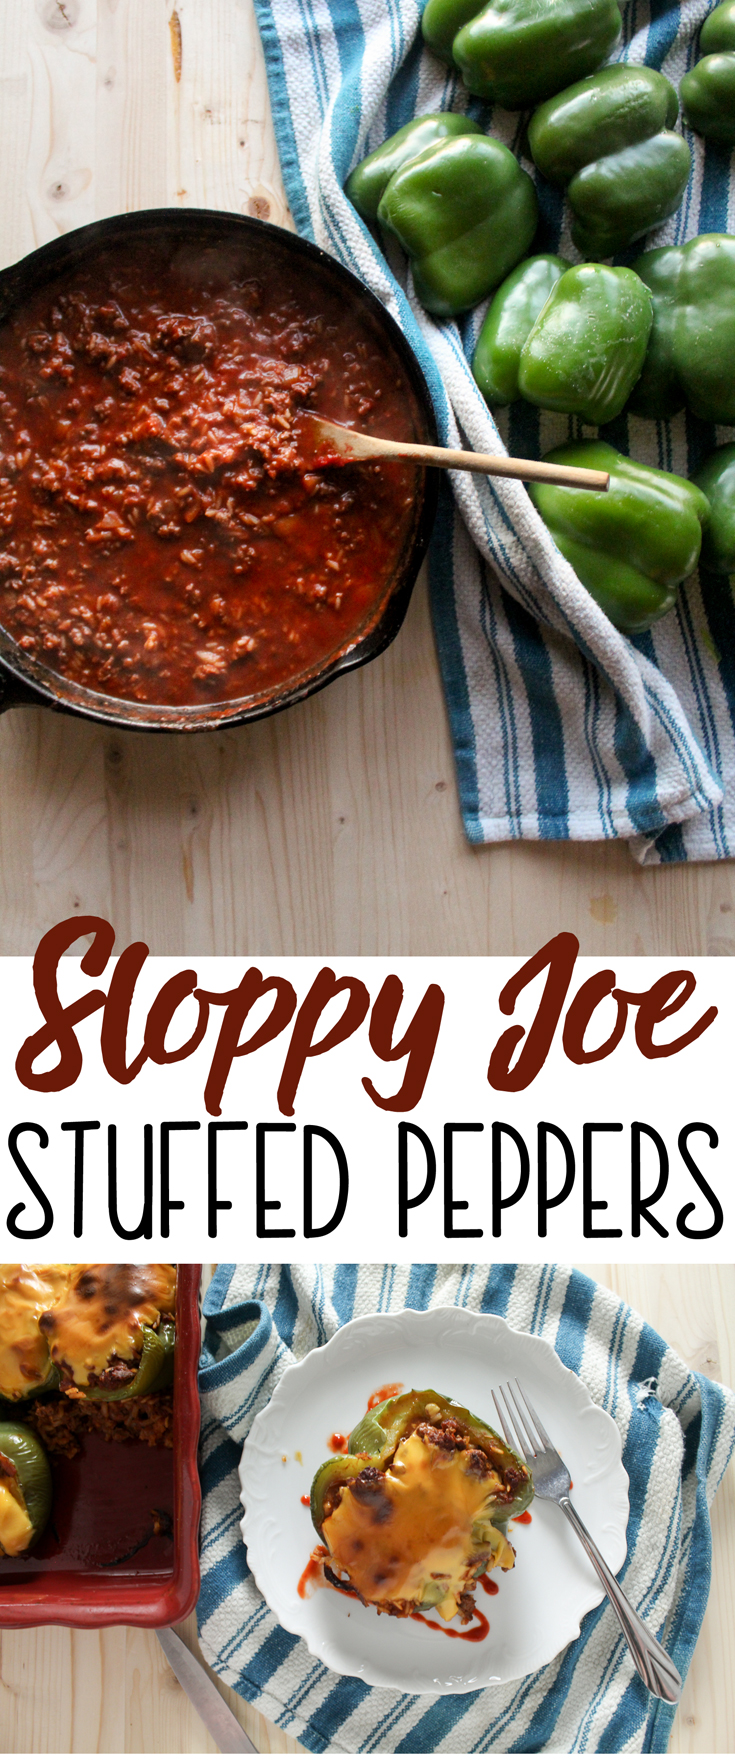 Sweet and tangy sloppy joes stuffed in sweet bell peppers and topped with cheese. This easy stuffed peppers recipe will be a family hit!  Easy weeknight meal